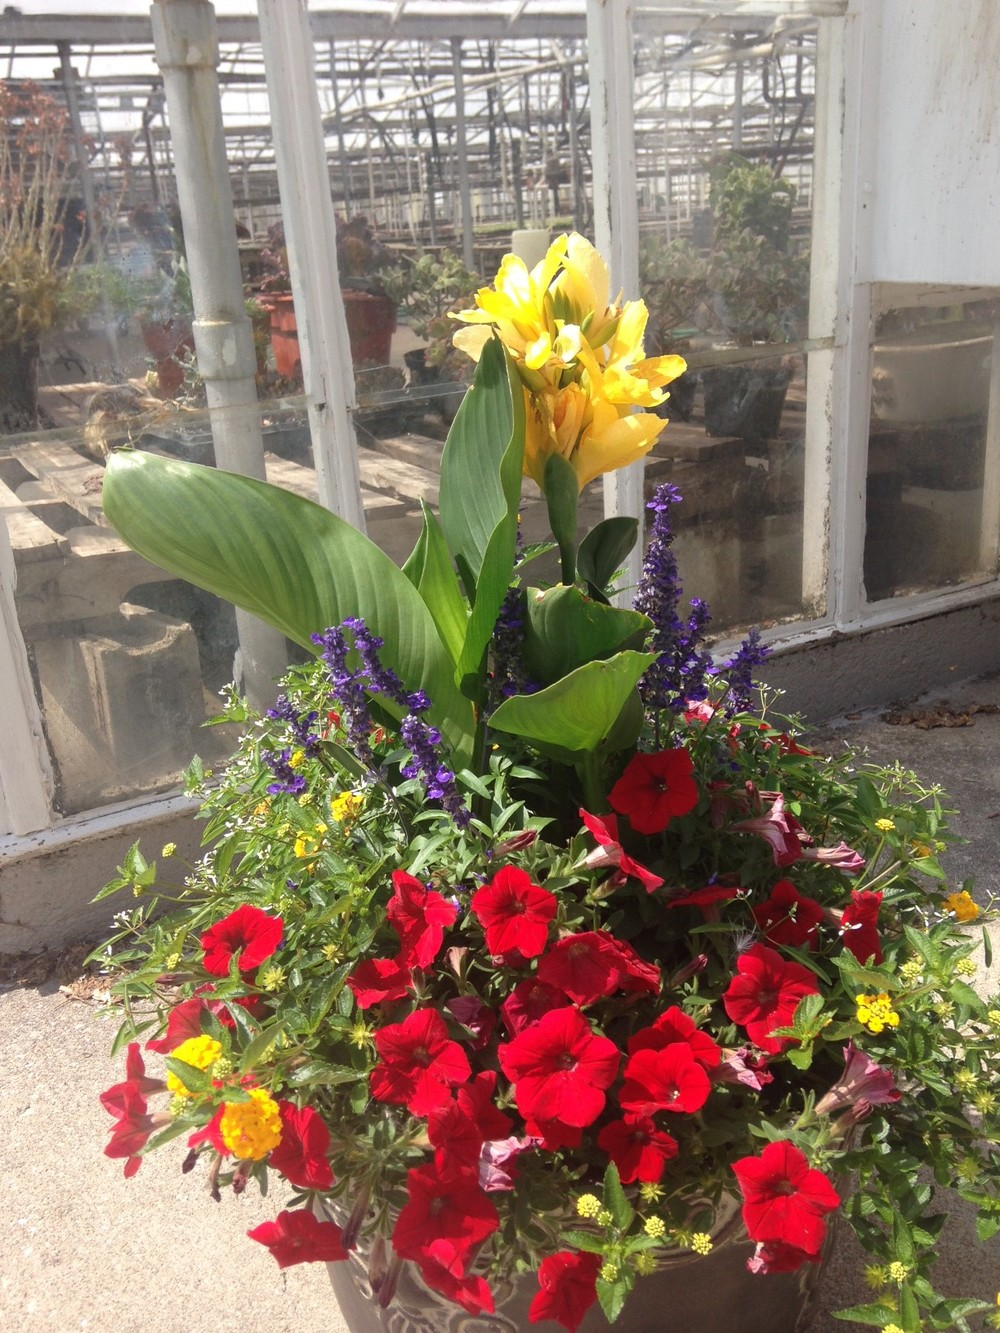 "Cannas offer excellent height and beautiful blooms to showcase either a planter or in a bedding arrangement. A favorite of landscapers and retail stores alike, we off Cannas in 6.5"" pots in the tropical variety so they can showcase their size and color."